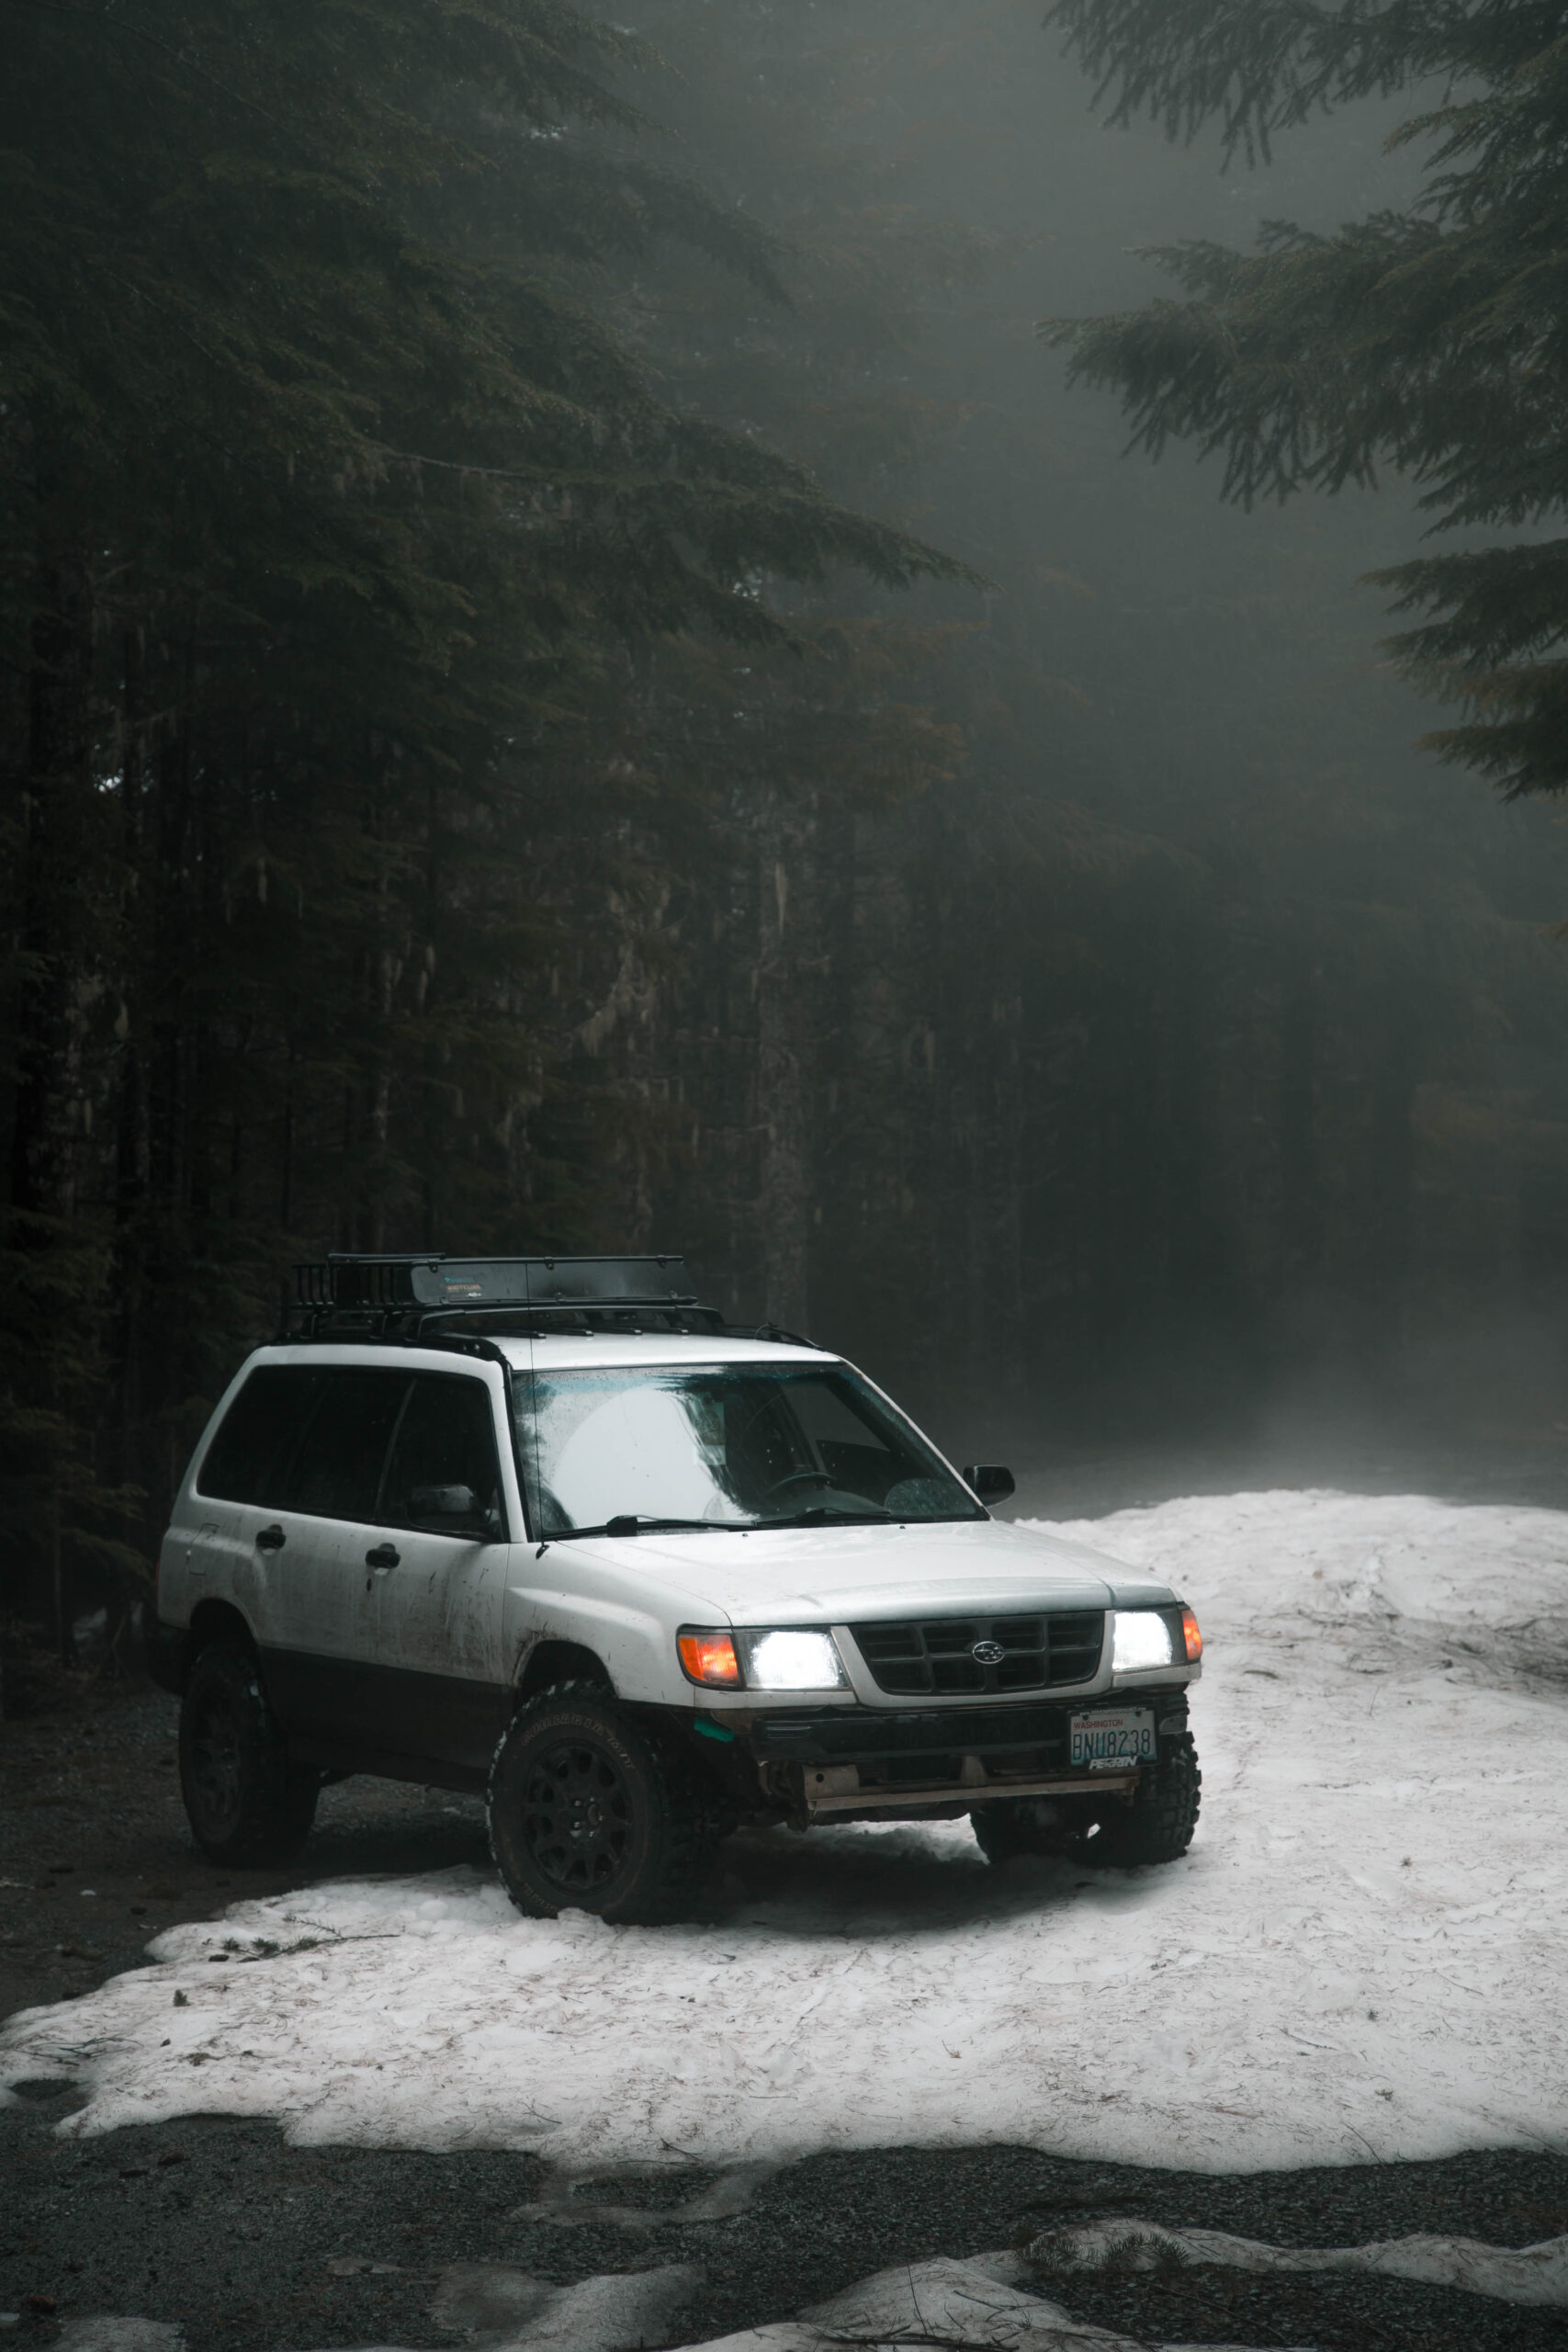 Lifted 2000 subaru forester with federal couragia mt tires in the snow on method wheels